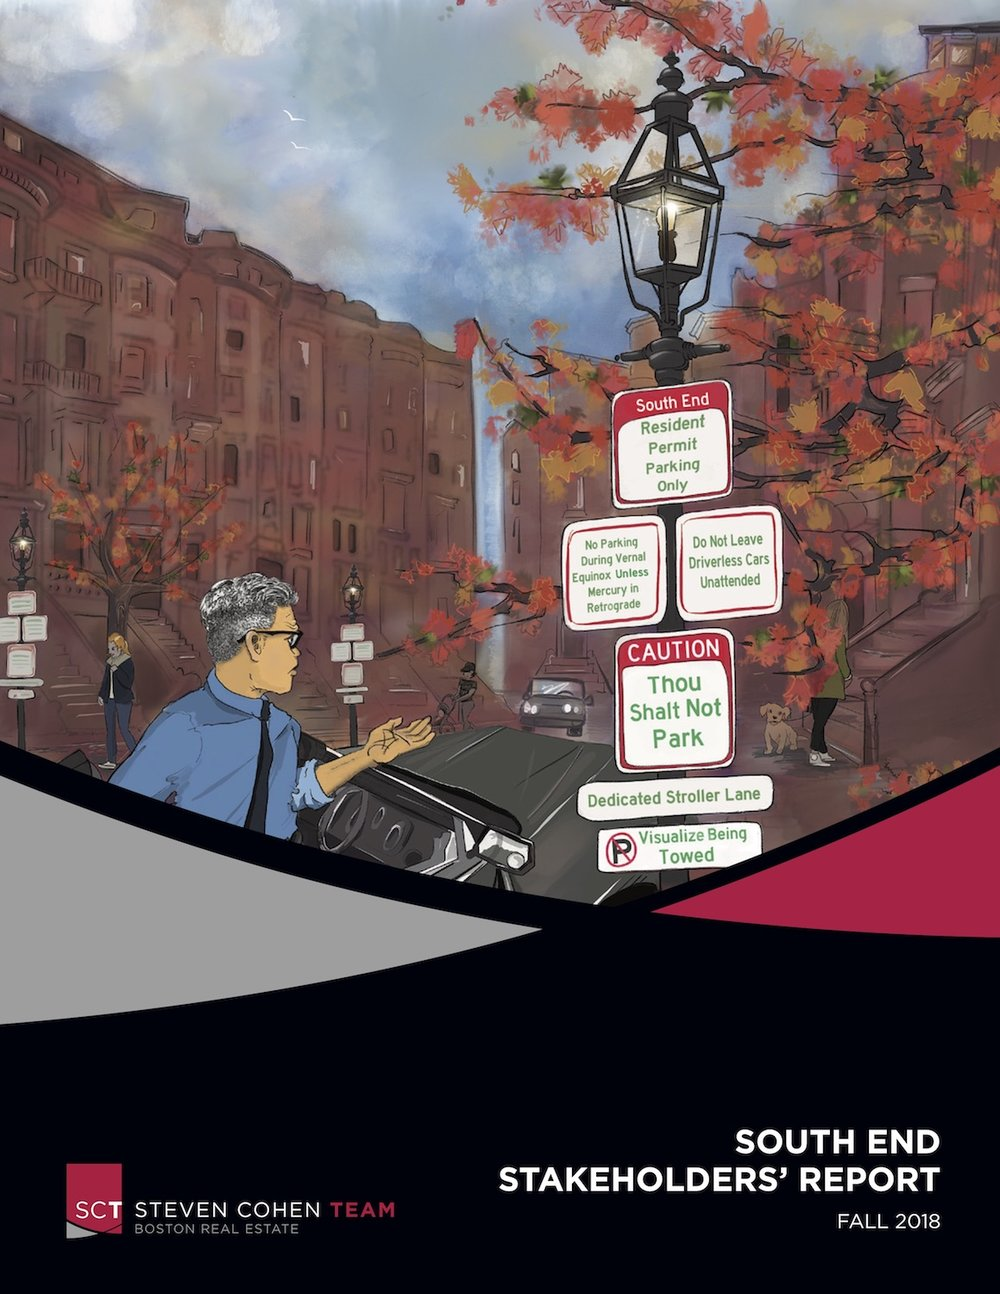 South End Stakeholders' Report Fall 2018.jpg